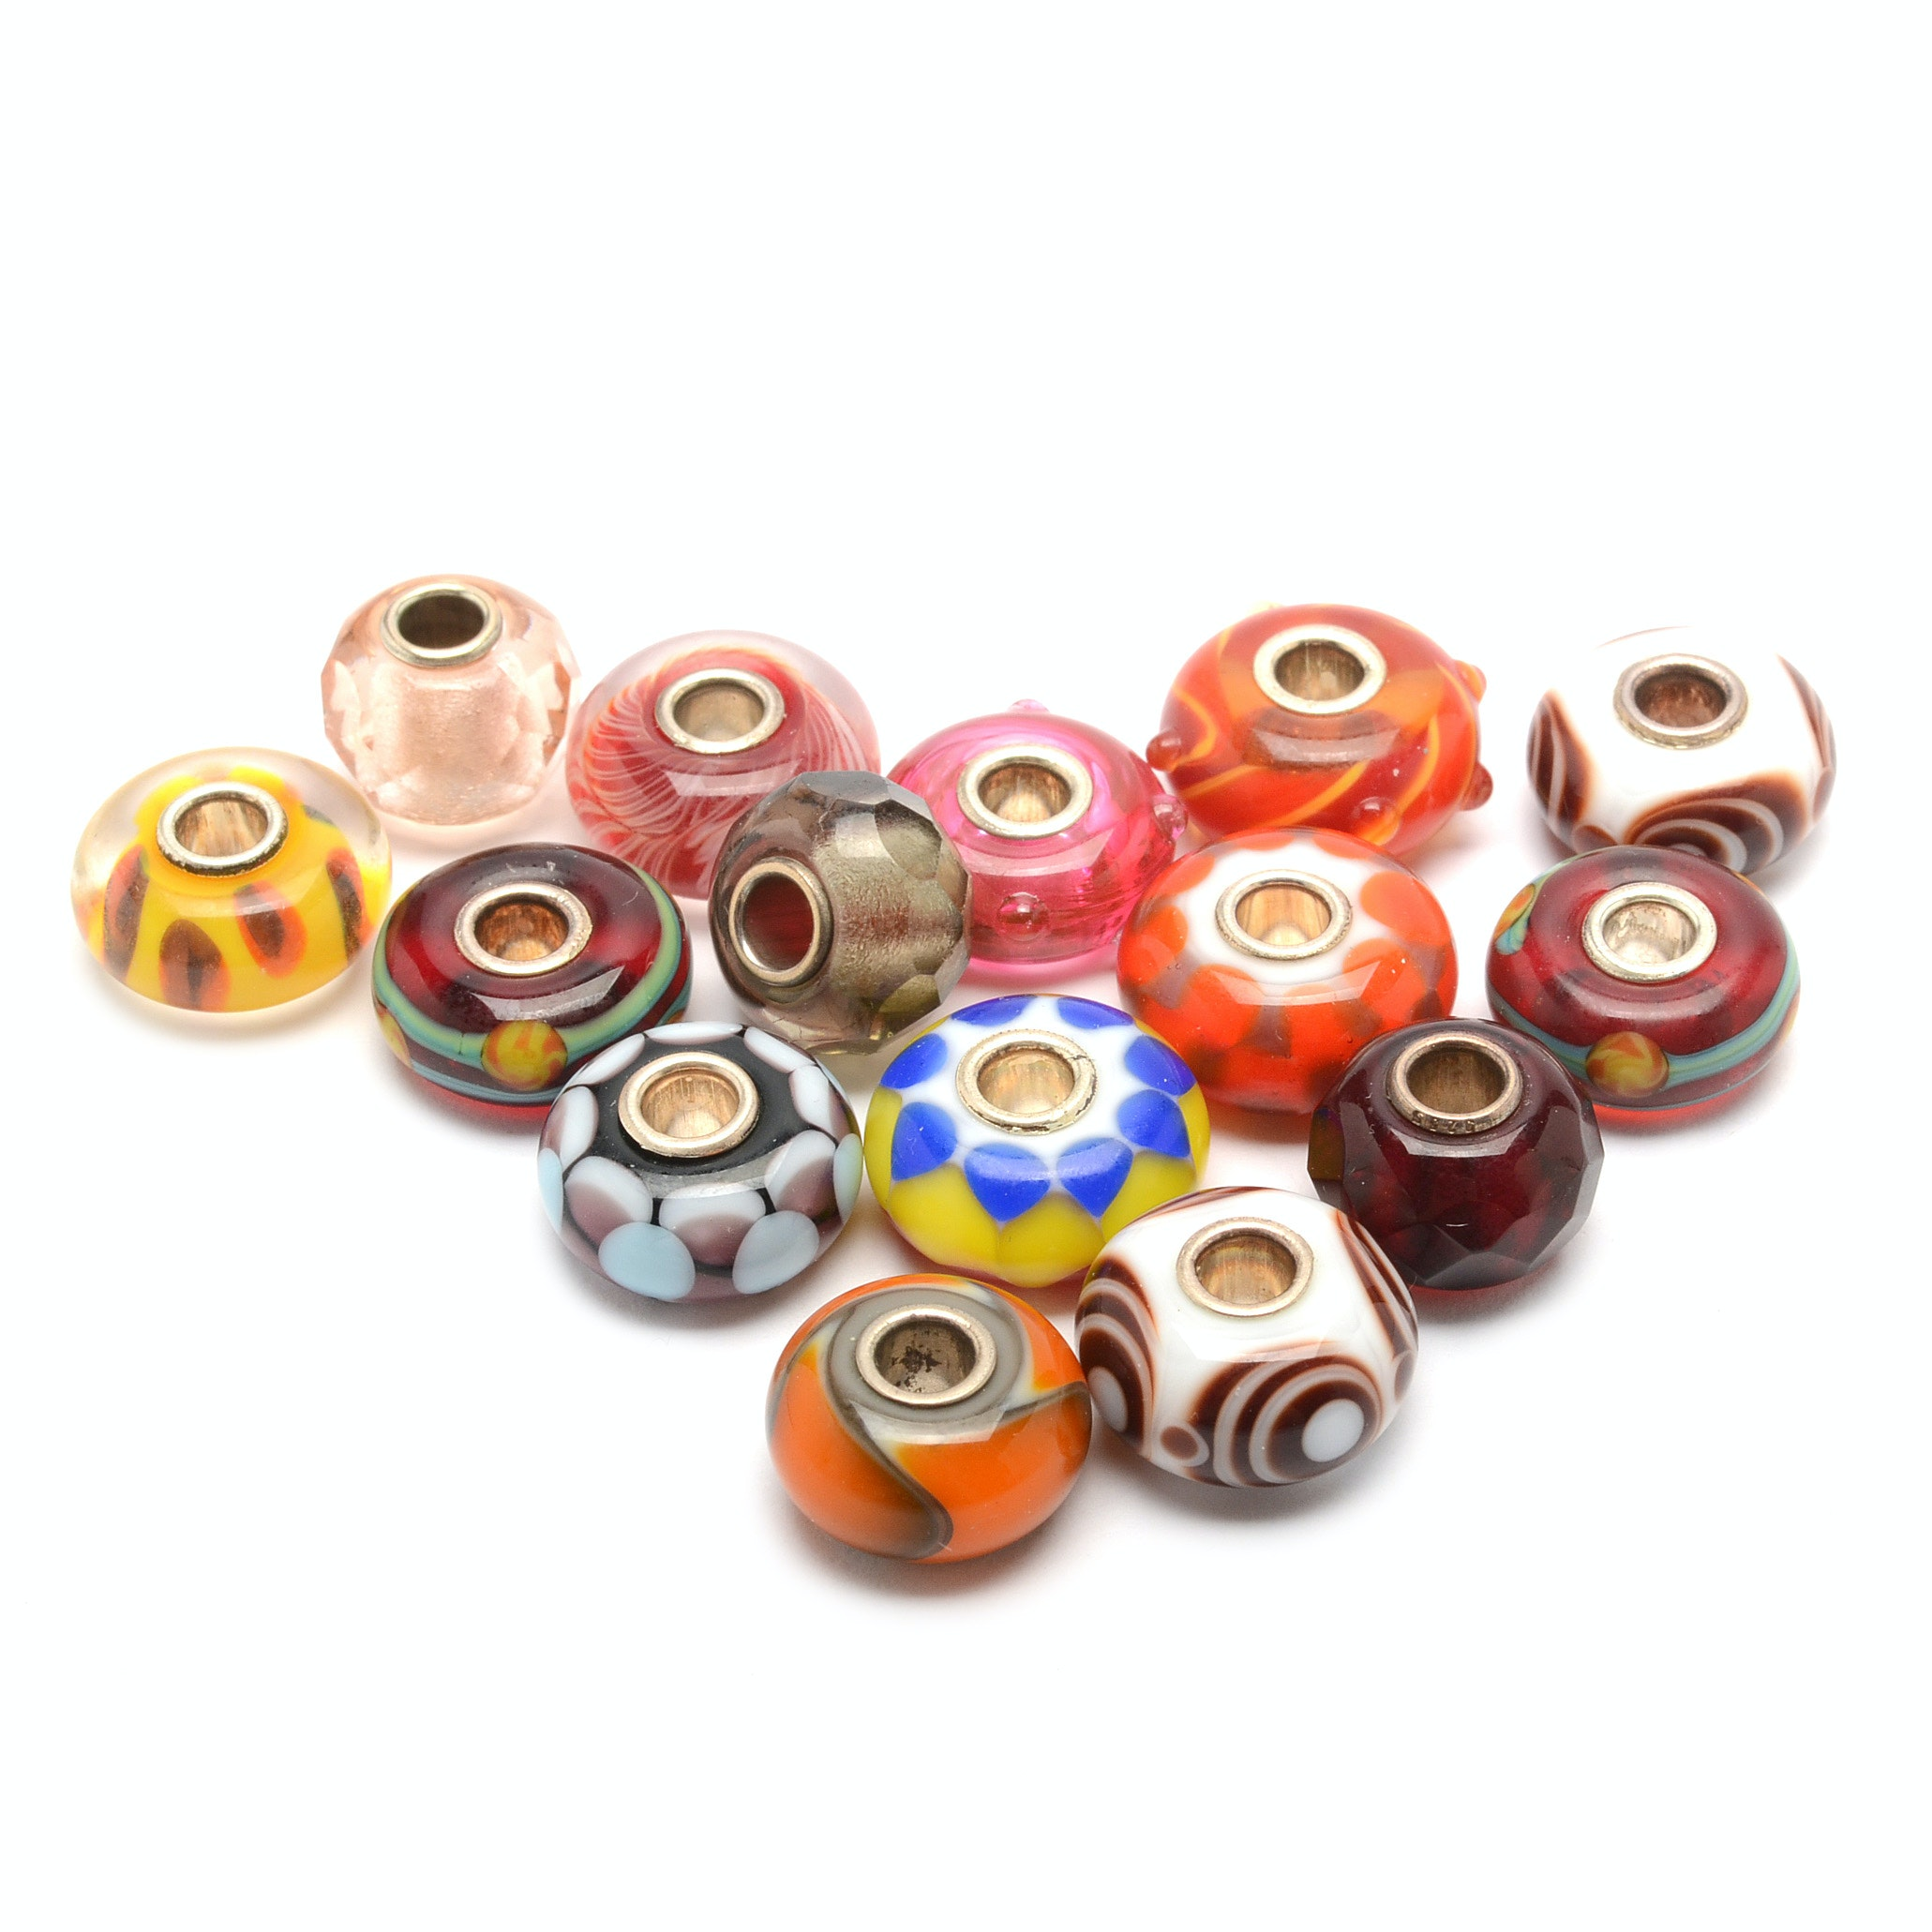 Trollbeads Handcrafted Art Glass Beads